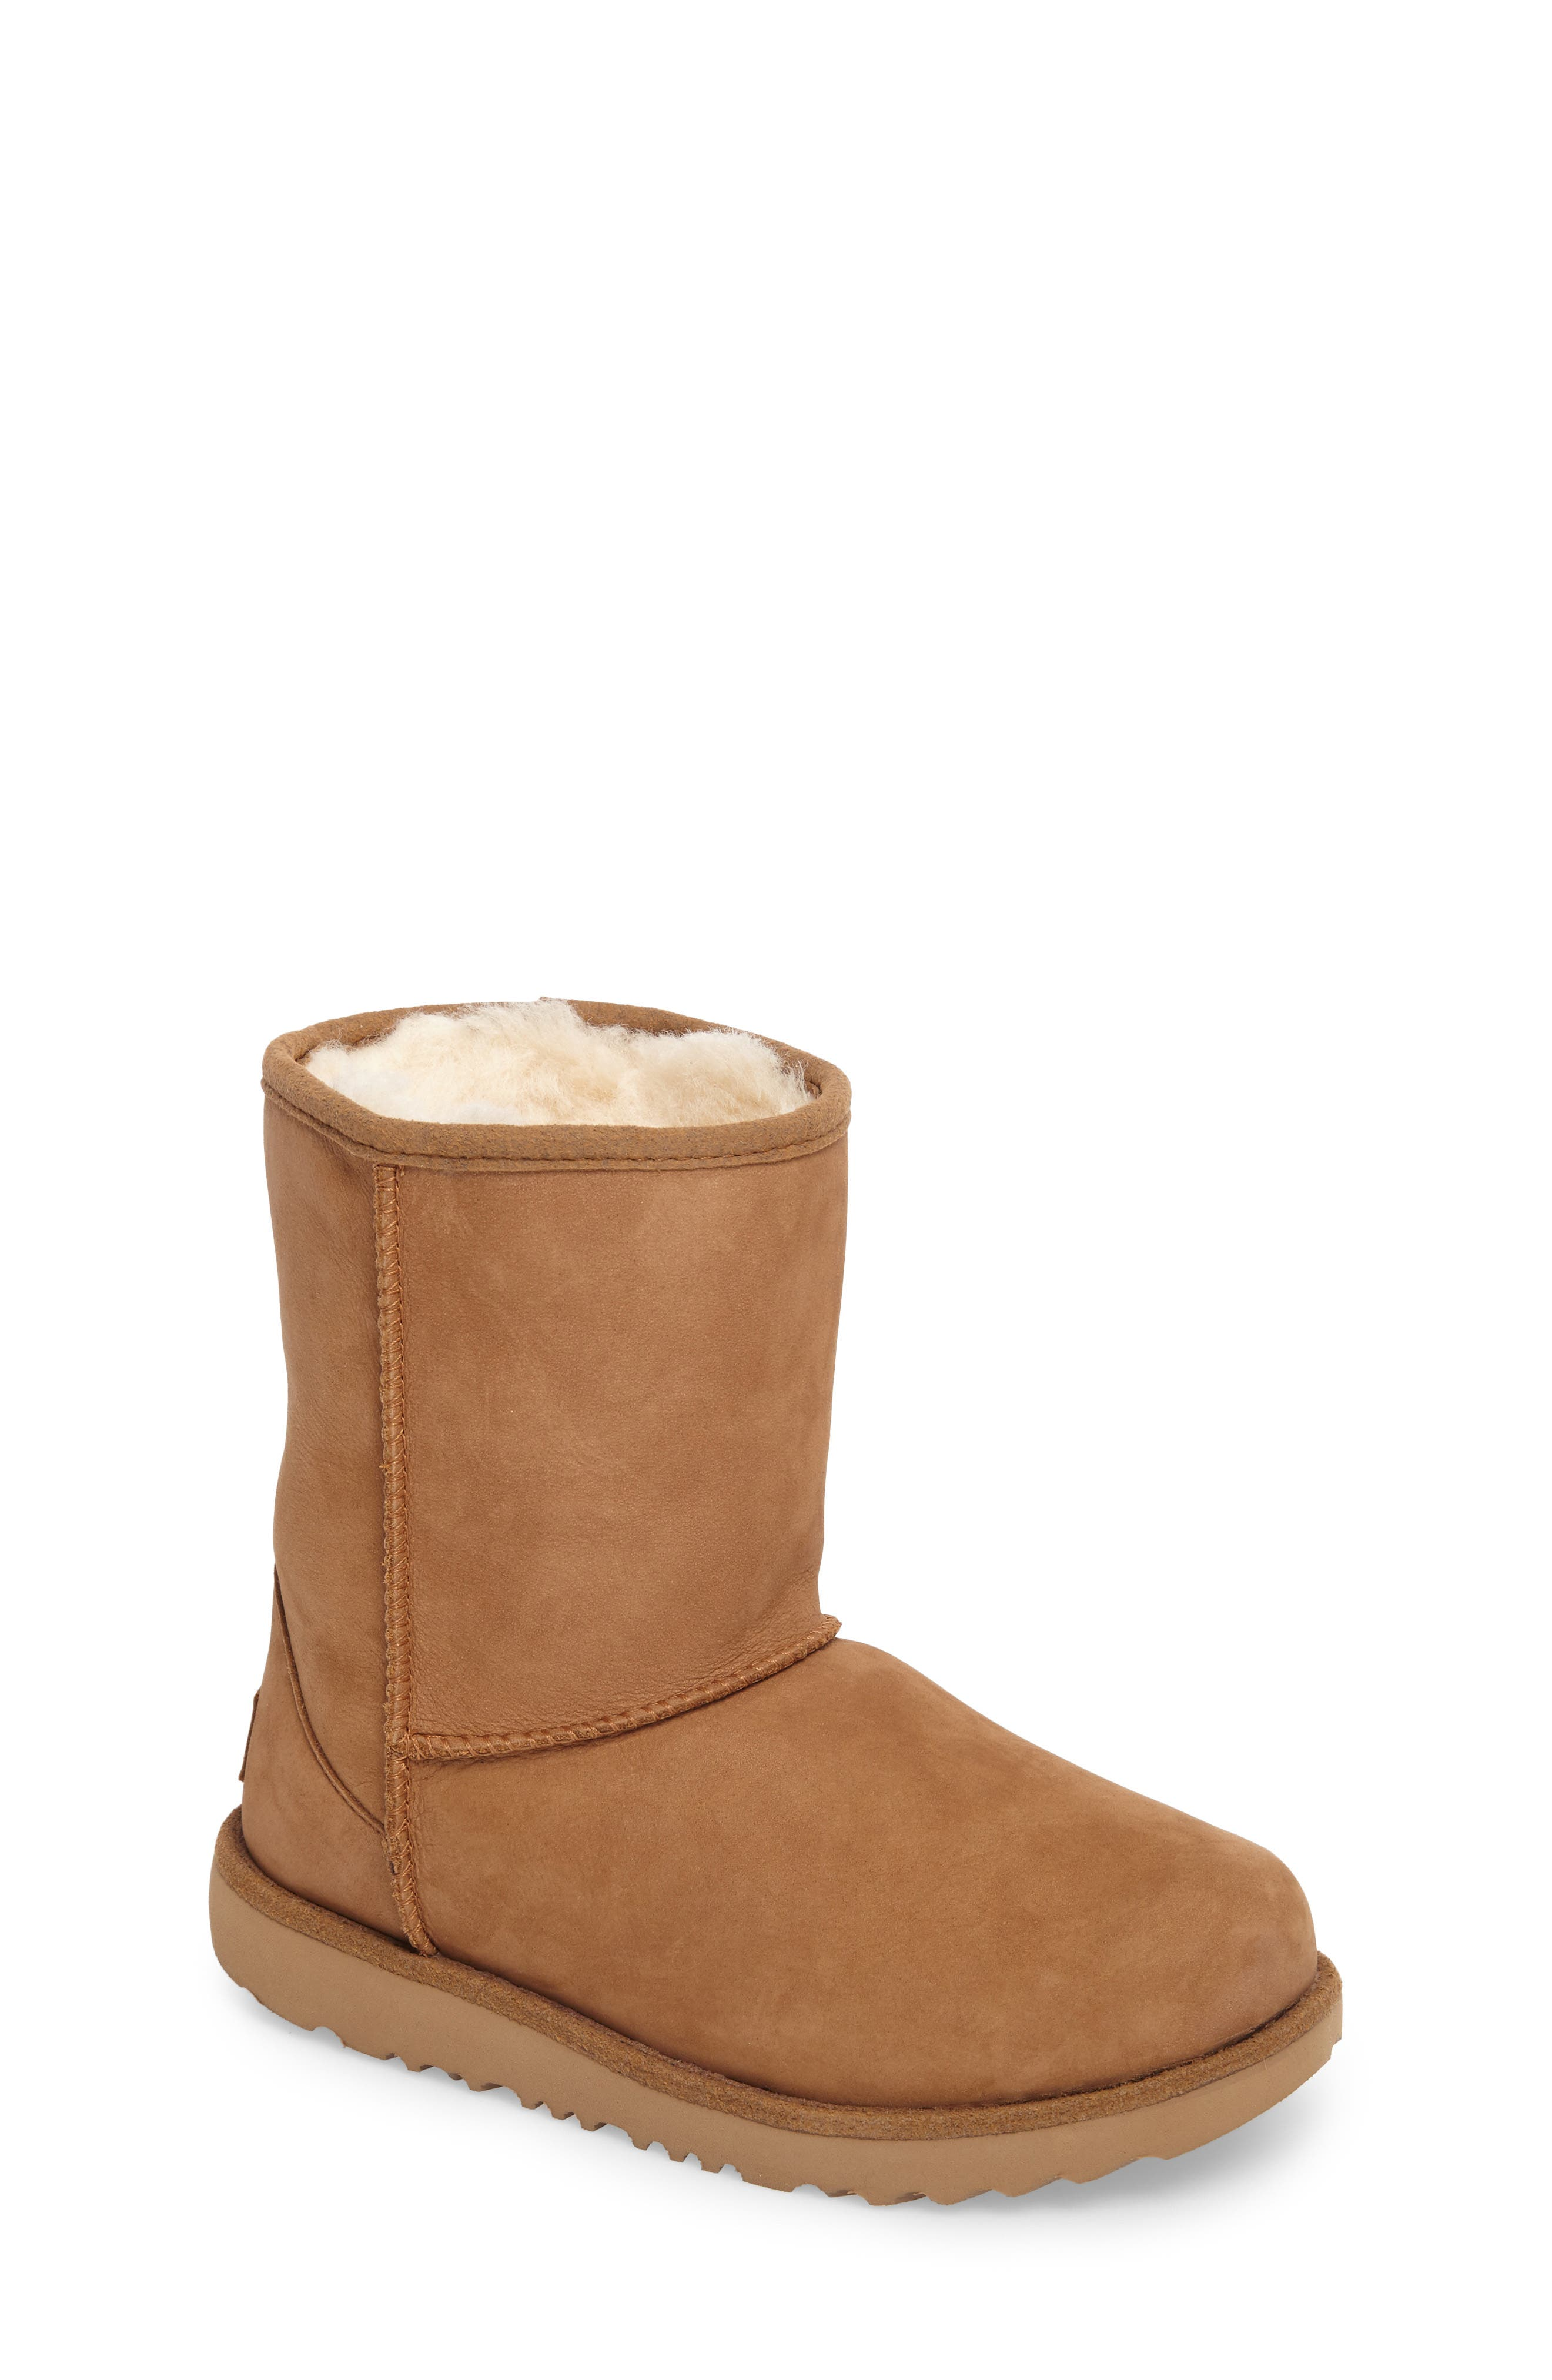 UGG<SUP>®</SUP>, Classic Short II Waterproof Boot, Main thumbnail 1, color, CHESTNUT